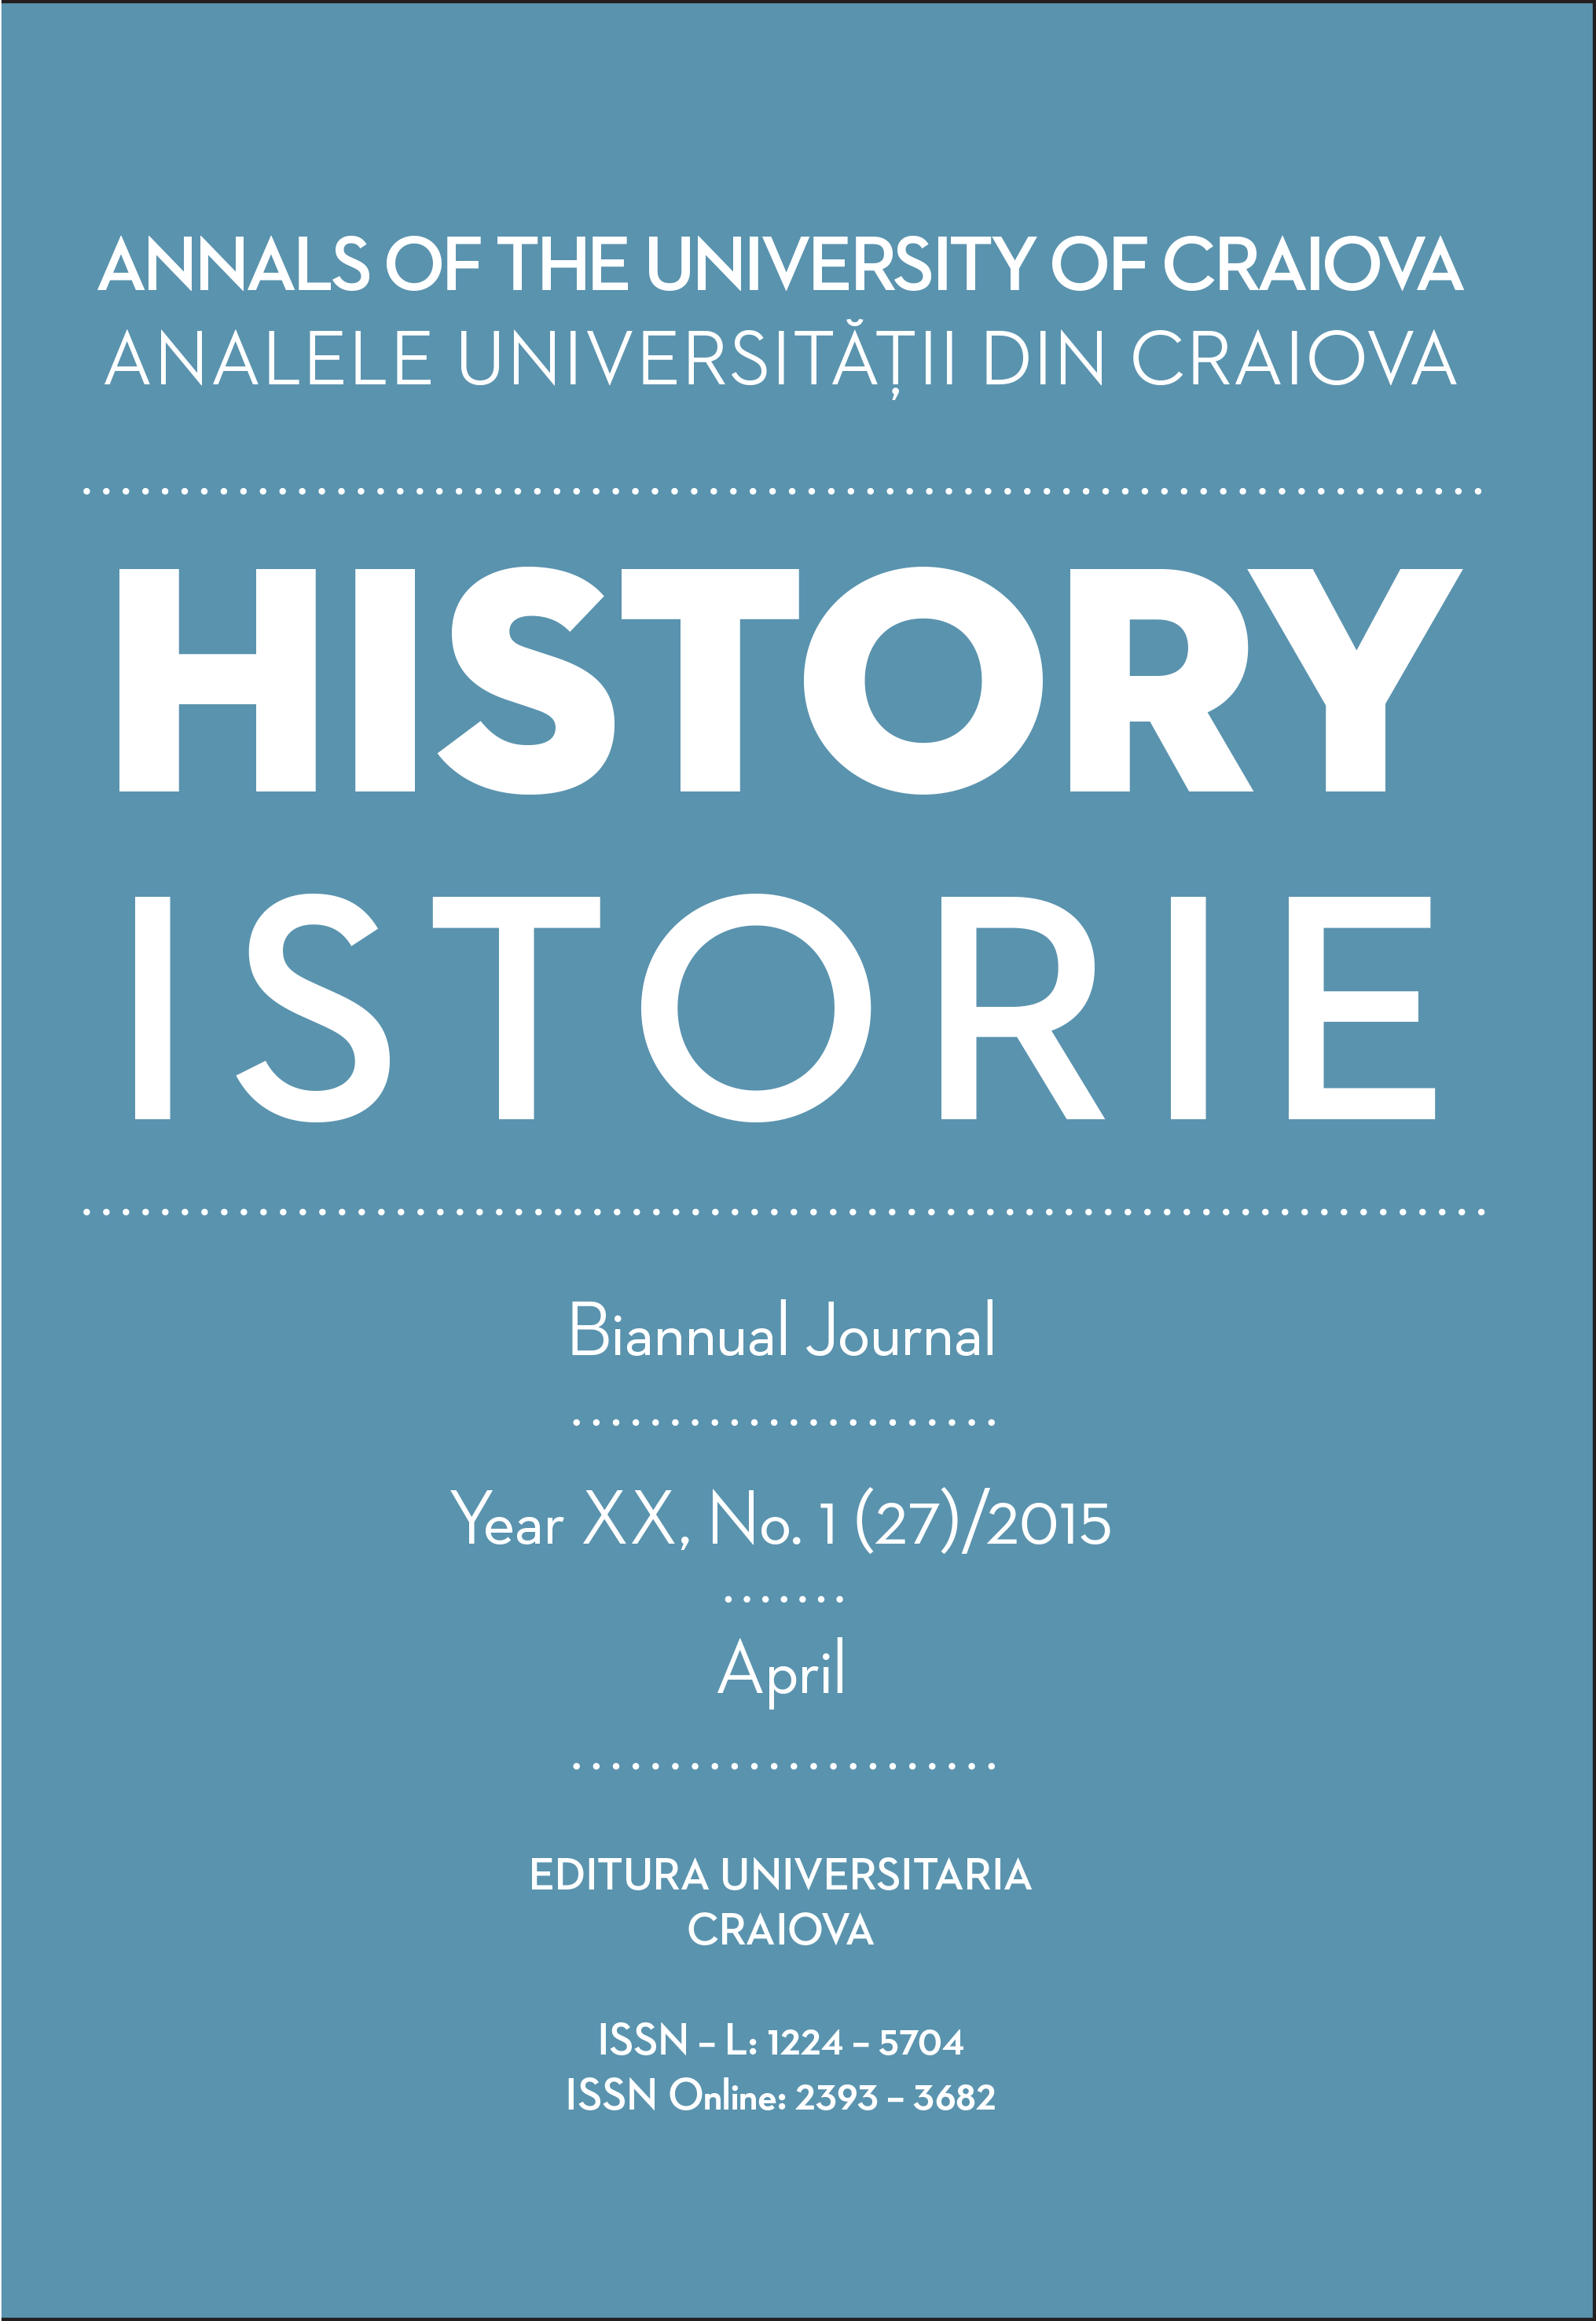 ANNALS OF THE UNIVERSITY OF CRAIOVA Year XX, No. 1(27)/2015